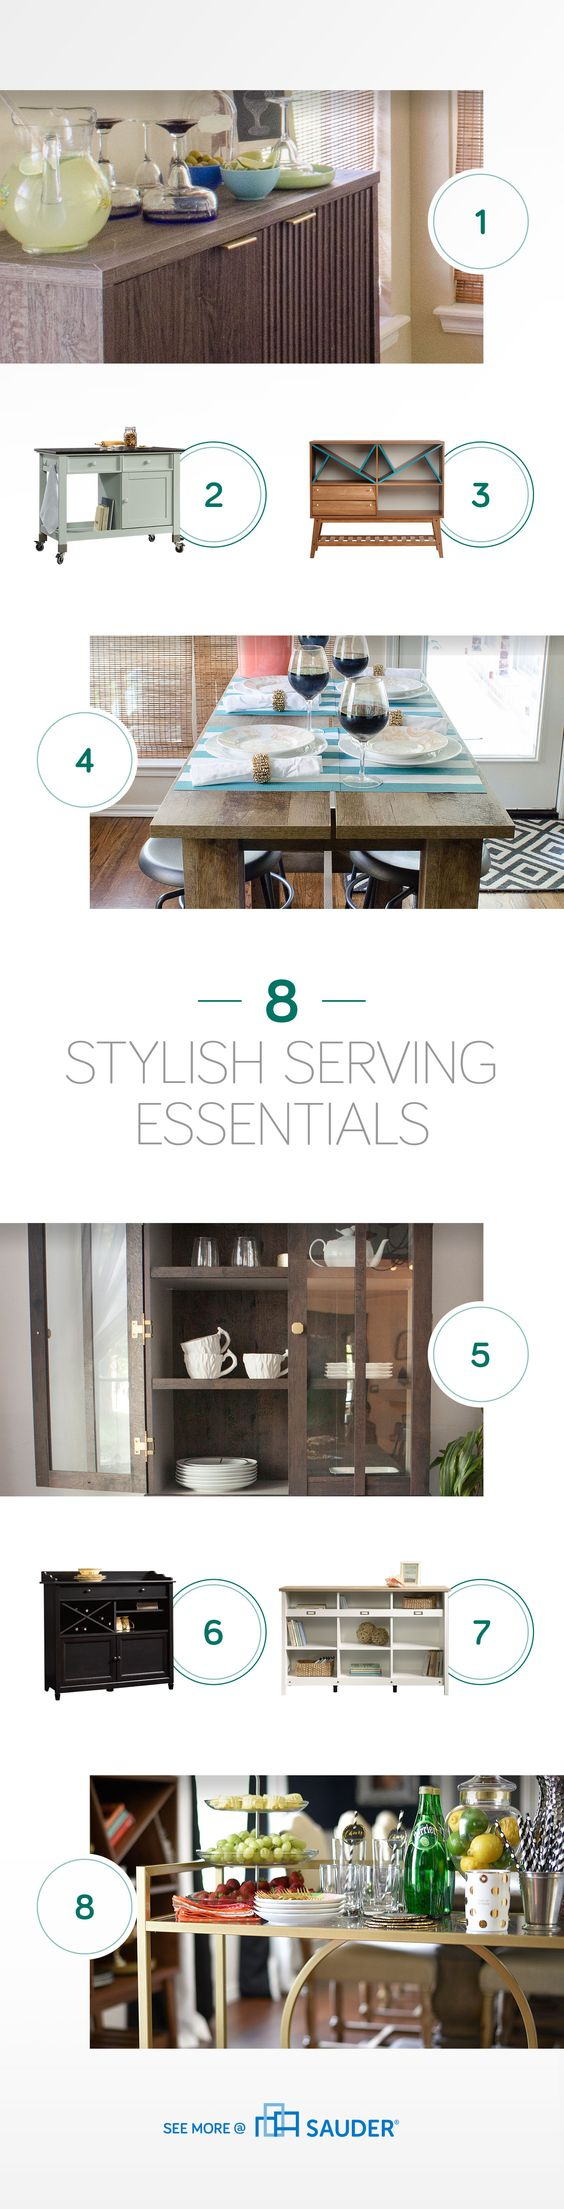 Stylish Serving Essentials